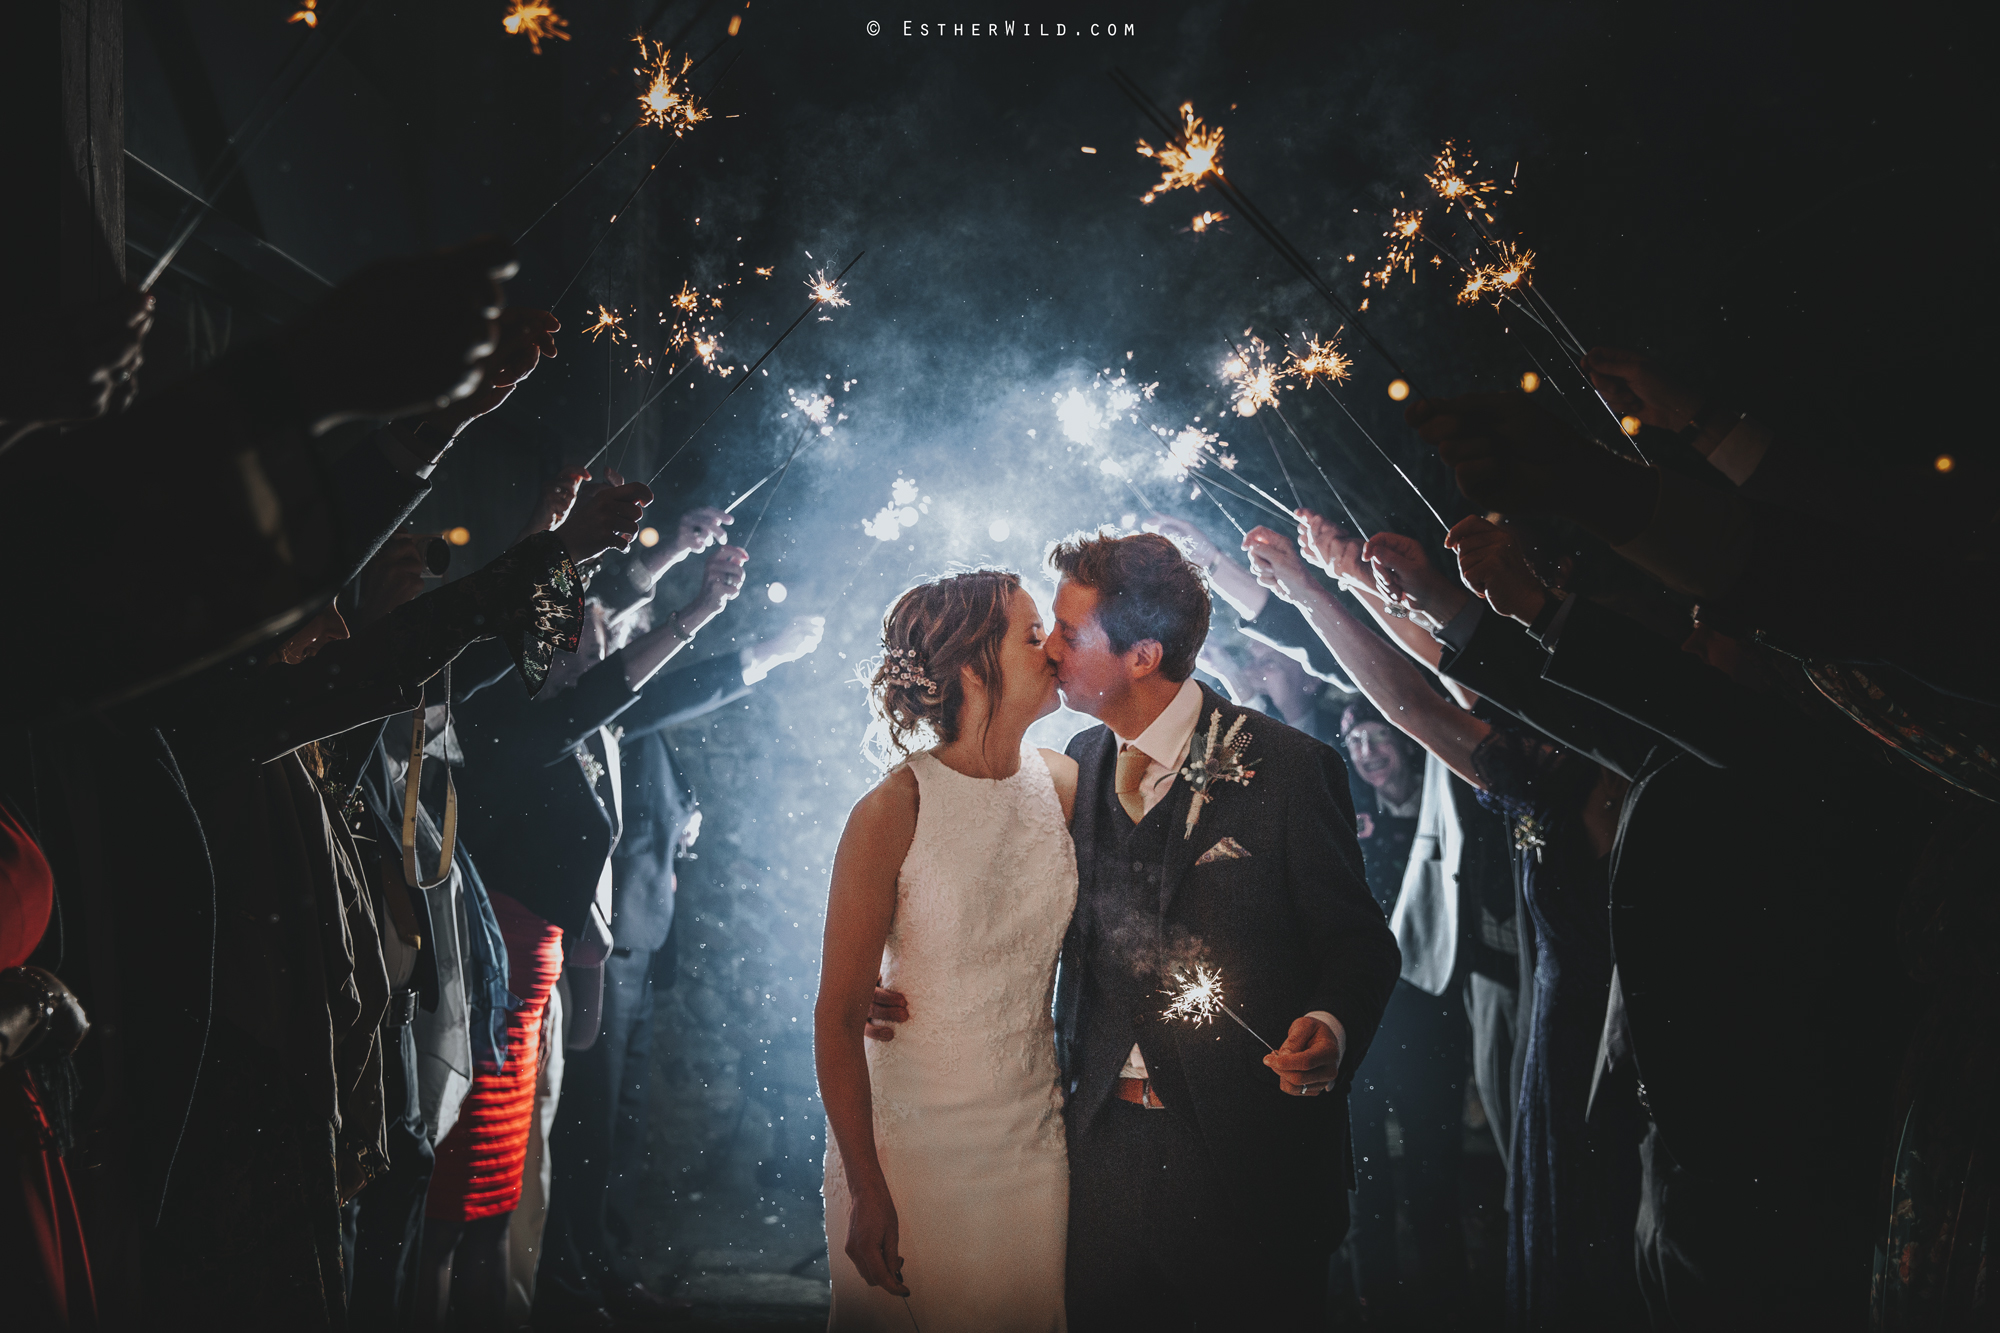 Wedding_Photographer_Chaucer_Barn_Holt_Norfolk_Country_Rustic_Venue_Copyright_Esther_Wild_IMG_2141.jpg